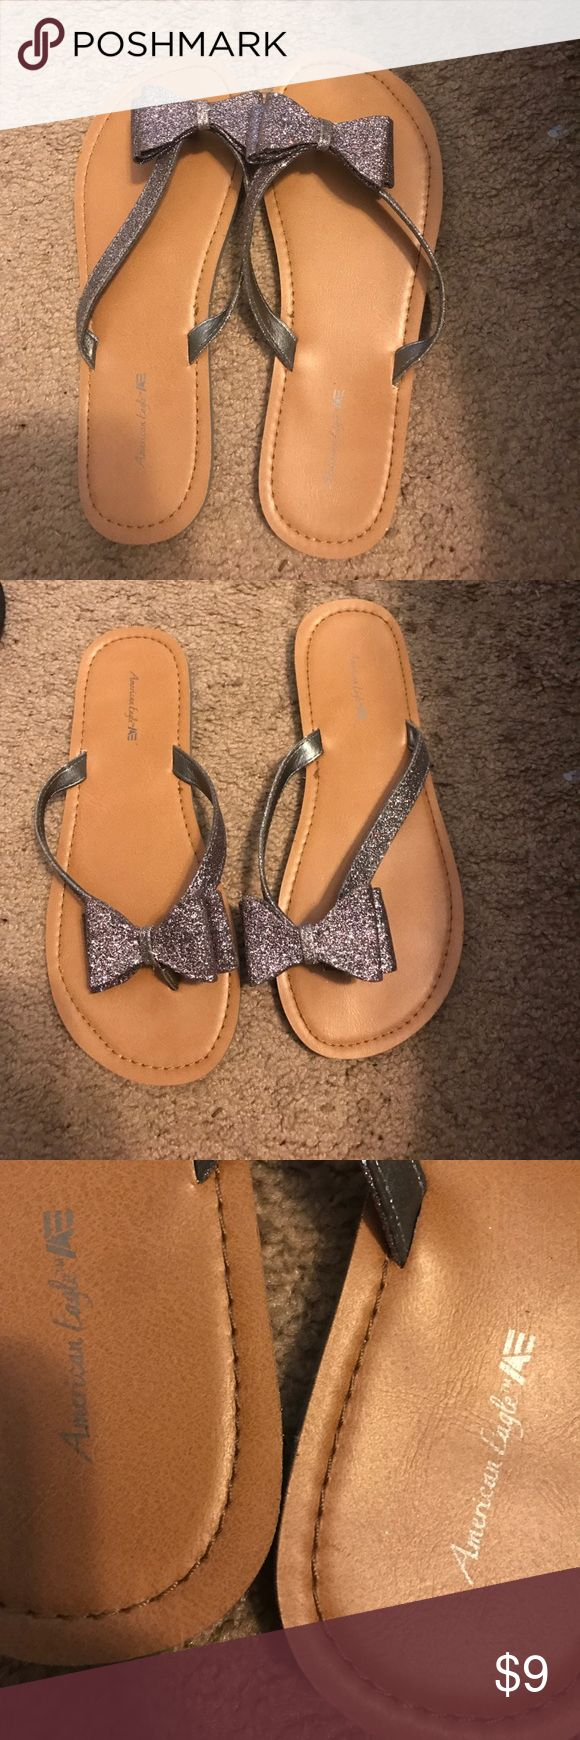 Cute bow metallic flip flops American eagle bow flip flops metallic color , cute bow detail , size 5 in women's or 3 in youth American Eagle by Payless Shoes Sandals